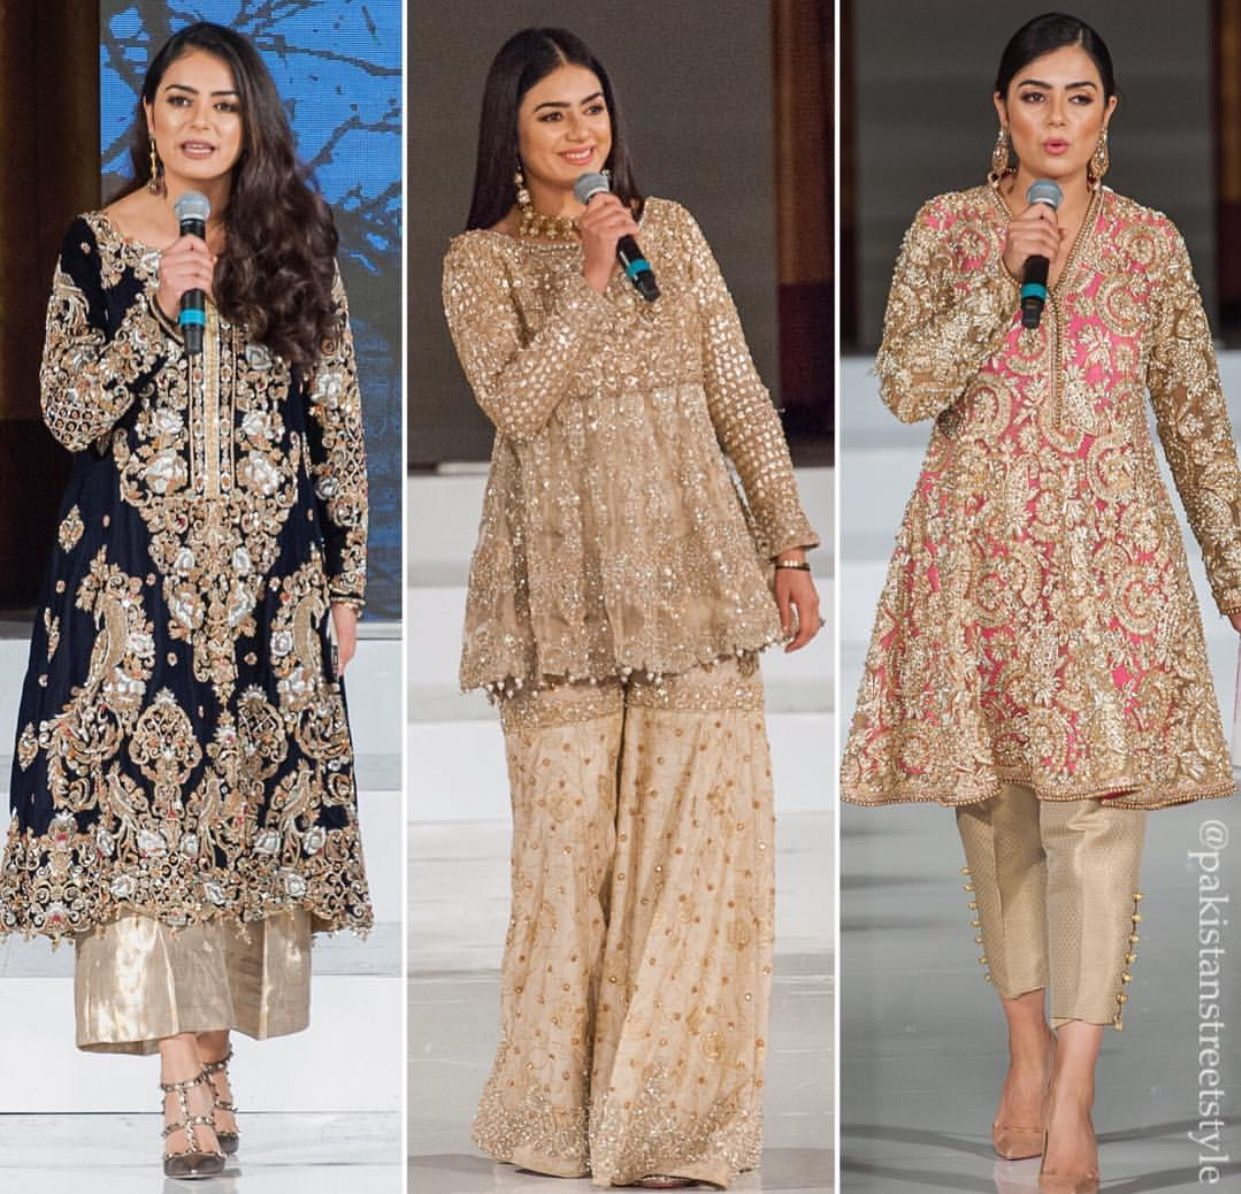 Sheikh Amna wear nargis hafeez dresses pictures recommendations dress for everyday in 2019